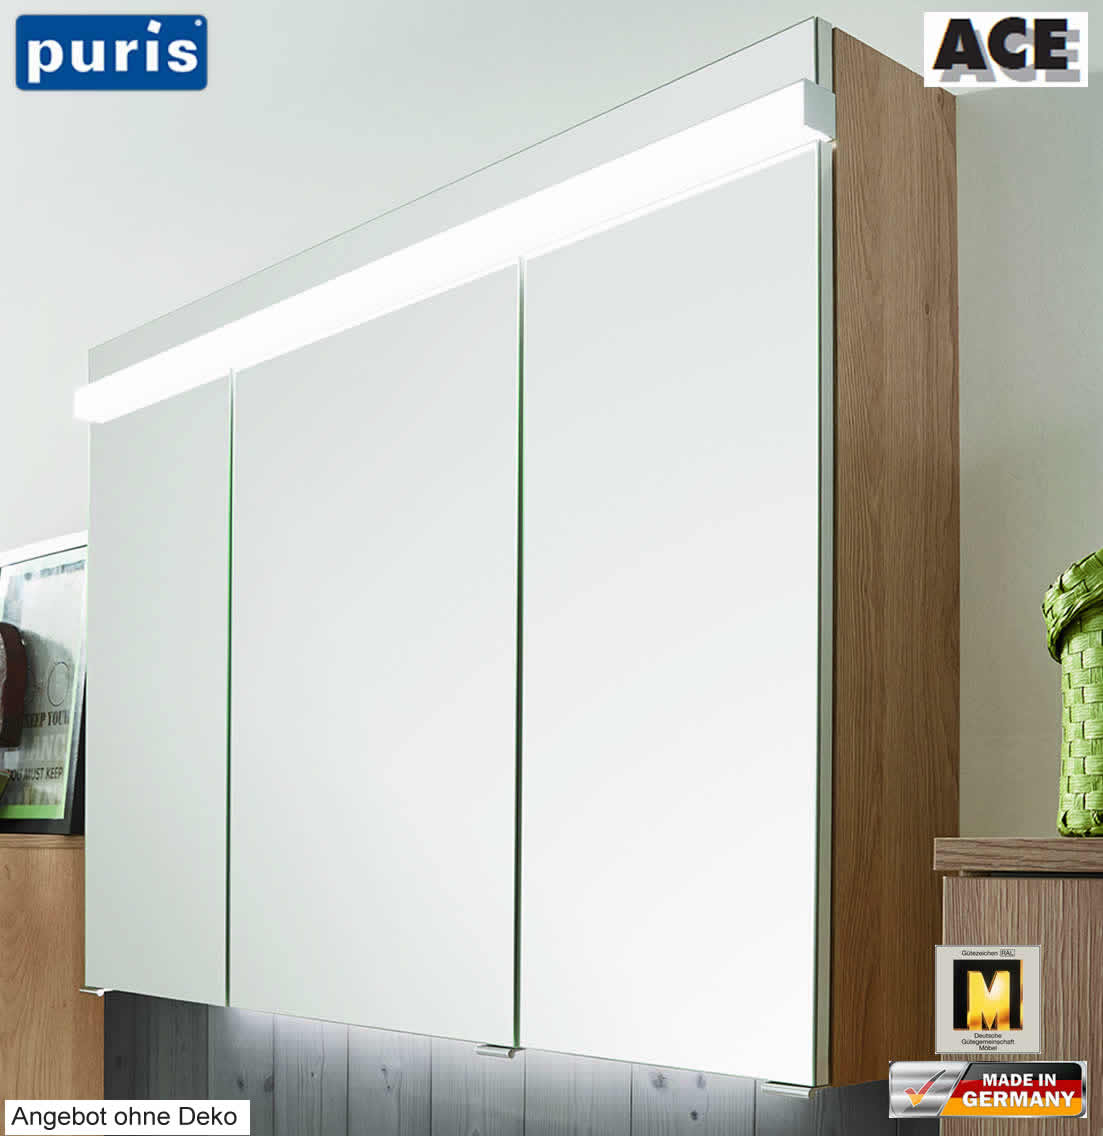 puris ace spiegelschrank 100 cm mit led beleuchtung impuls home. Black Bedroom Furniture Sets. Home Design Ideas